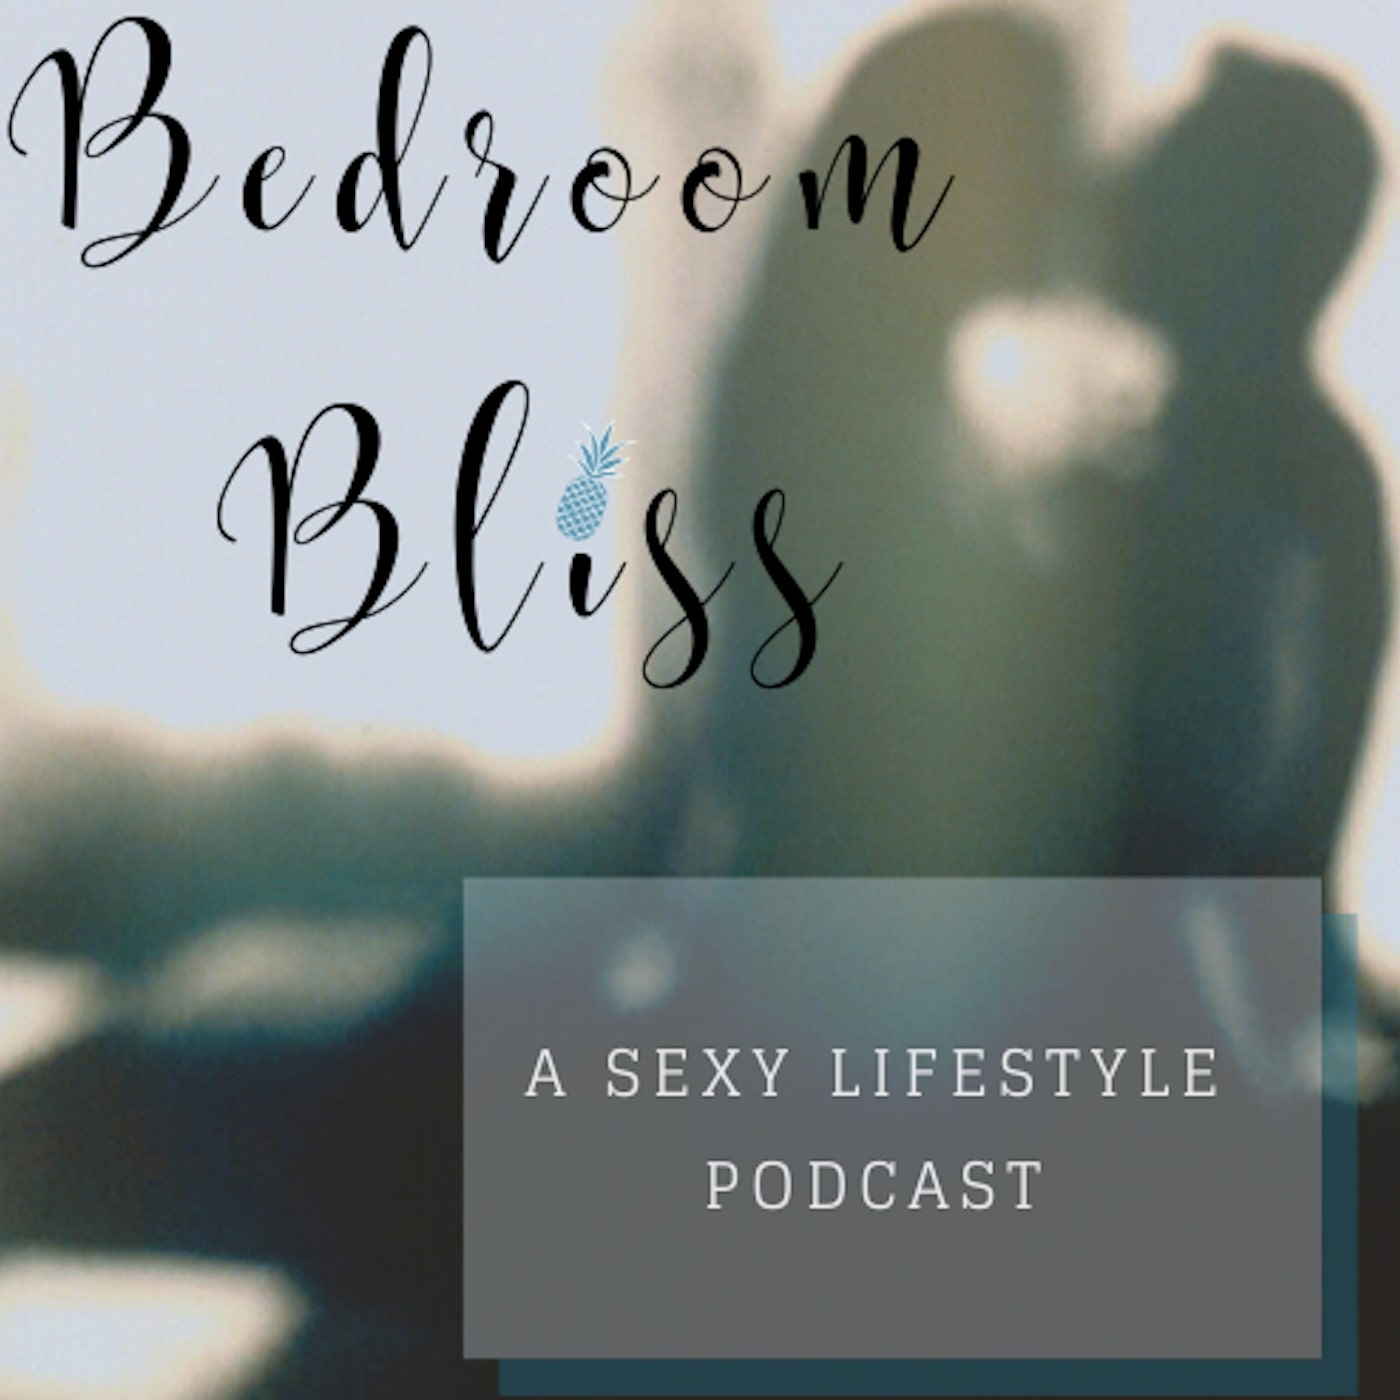 This podcast is about the lifestyle from the perspective of a married interracial couple. This episode we talk about the Sinnergy Lingerie Soire event. We Discuss Renee's attempt at starting an orgy & what went wrong that made it not work out the way she...